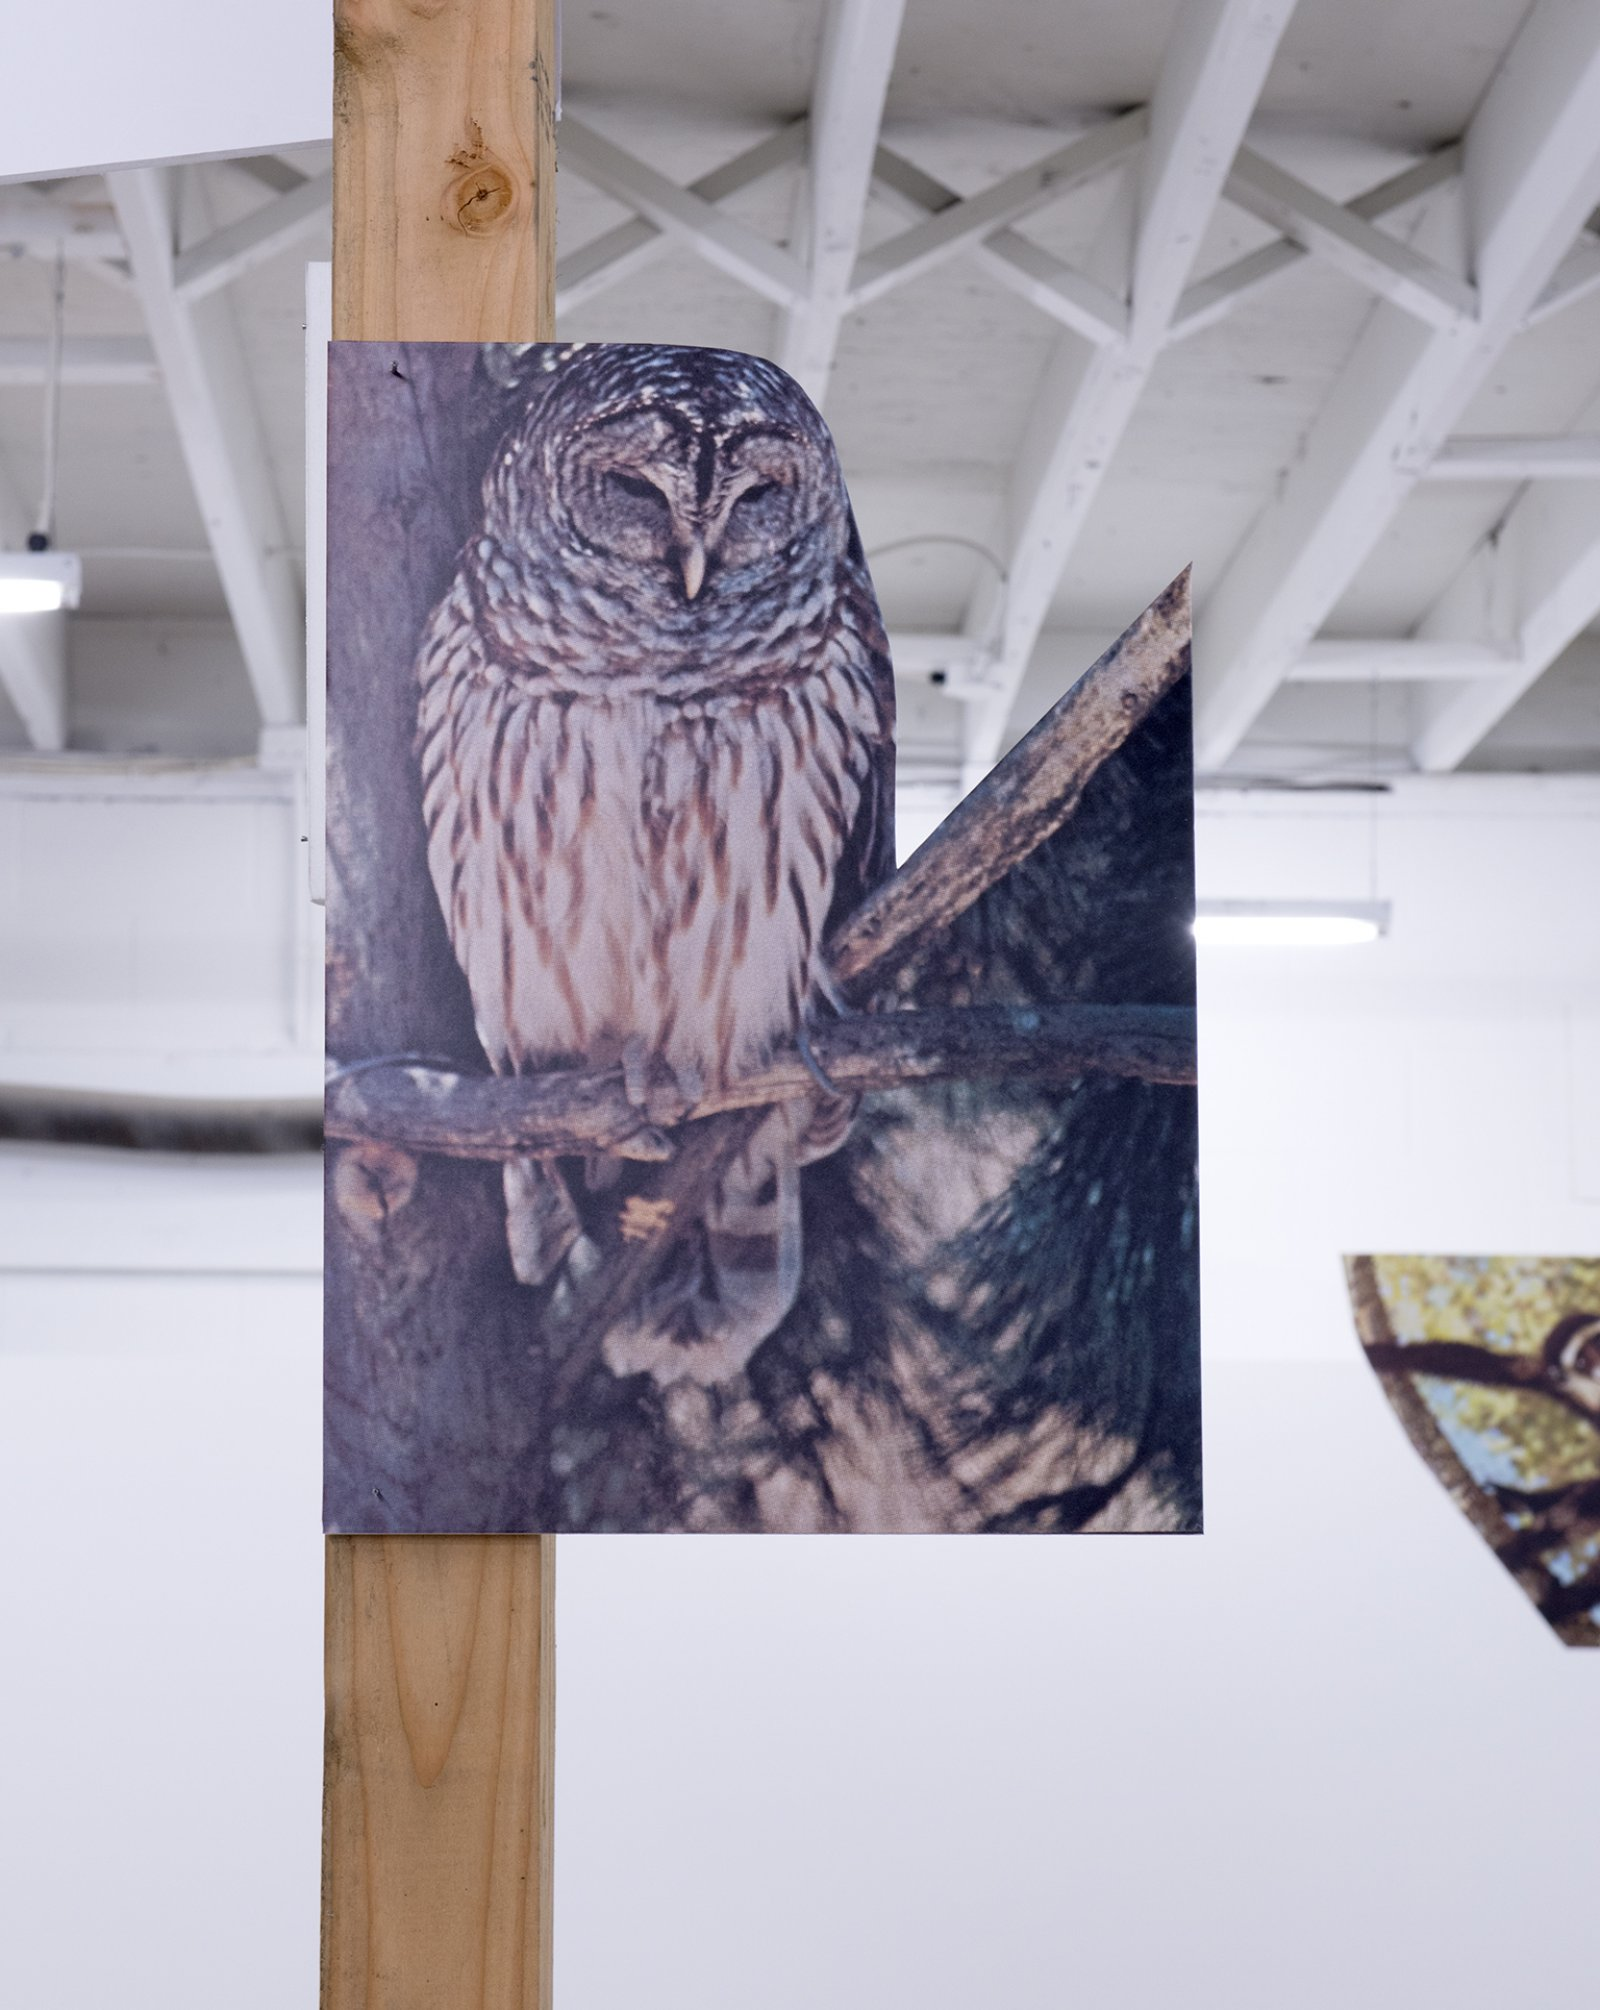 Geoffrey Farmer, The other ate one man, one man was set adrift, one man turned into a snake, one man washed ashore and became a statue and the others eyes were stolen by the owl.(detail), 2014, douglas fir pole, 6 photographs mounted on foamcore, 200 x 4 x 4 in. (508 x 9 x 9 cm)